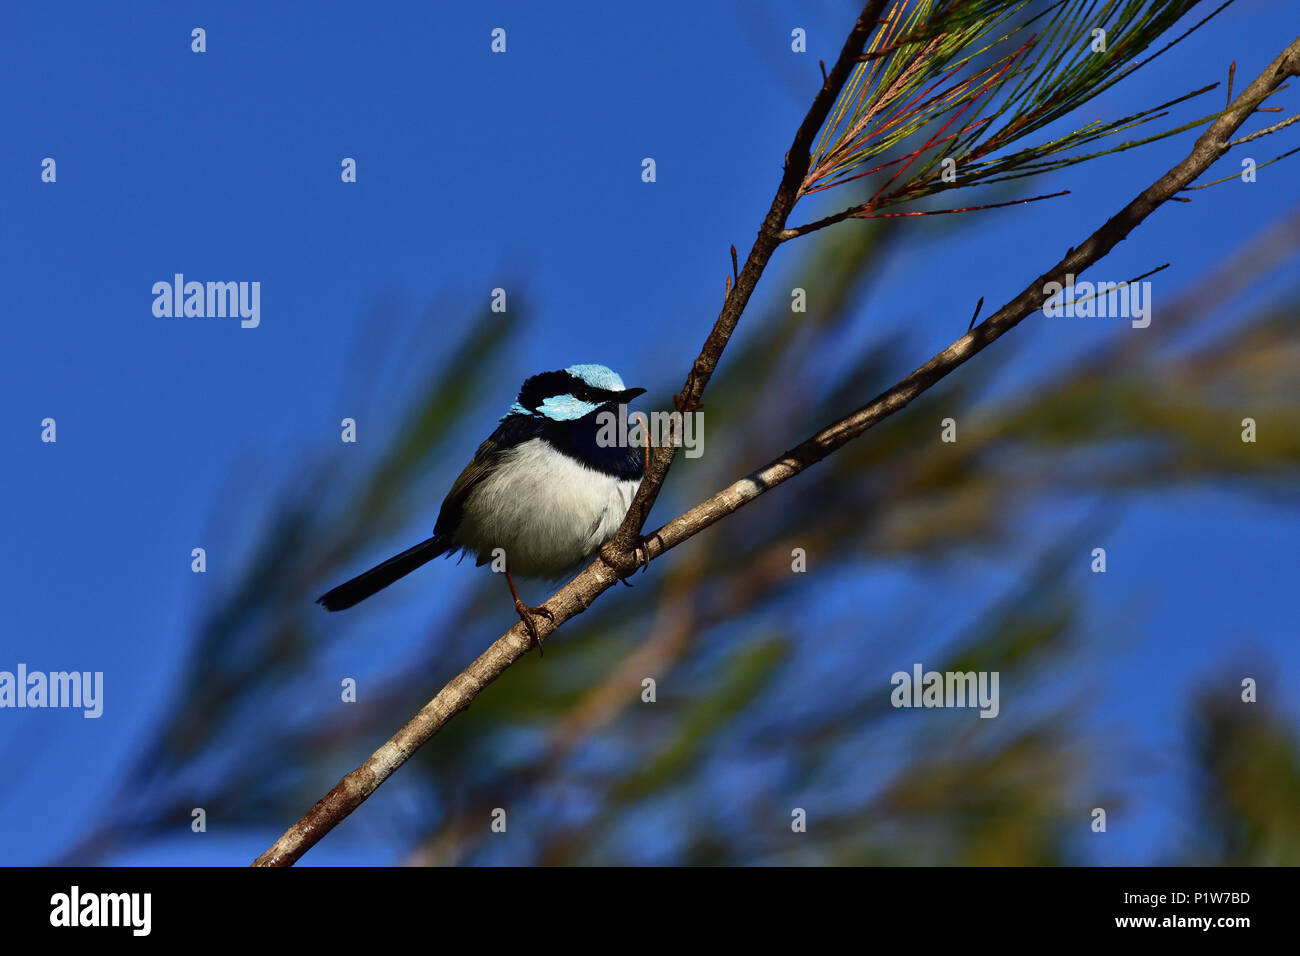 An Australian, Brisbane Queensland Male Superb Fairy-wren, Malurus cyaneus perched on a Tree branch looking for food - Stock Image